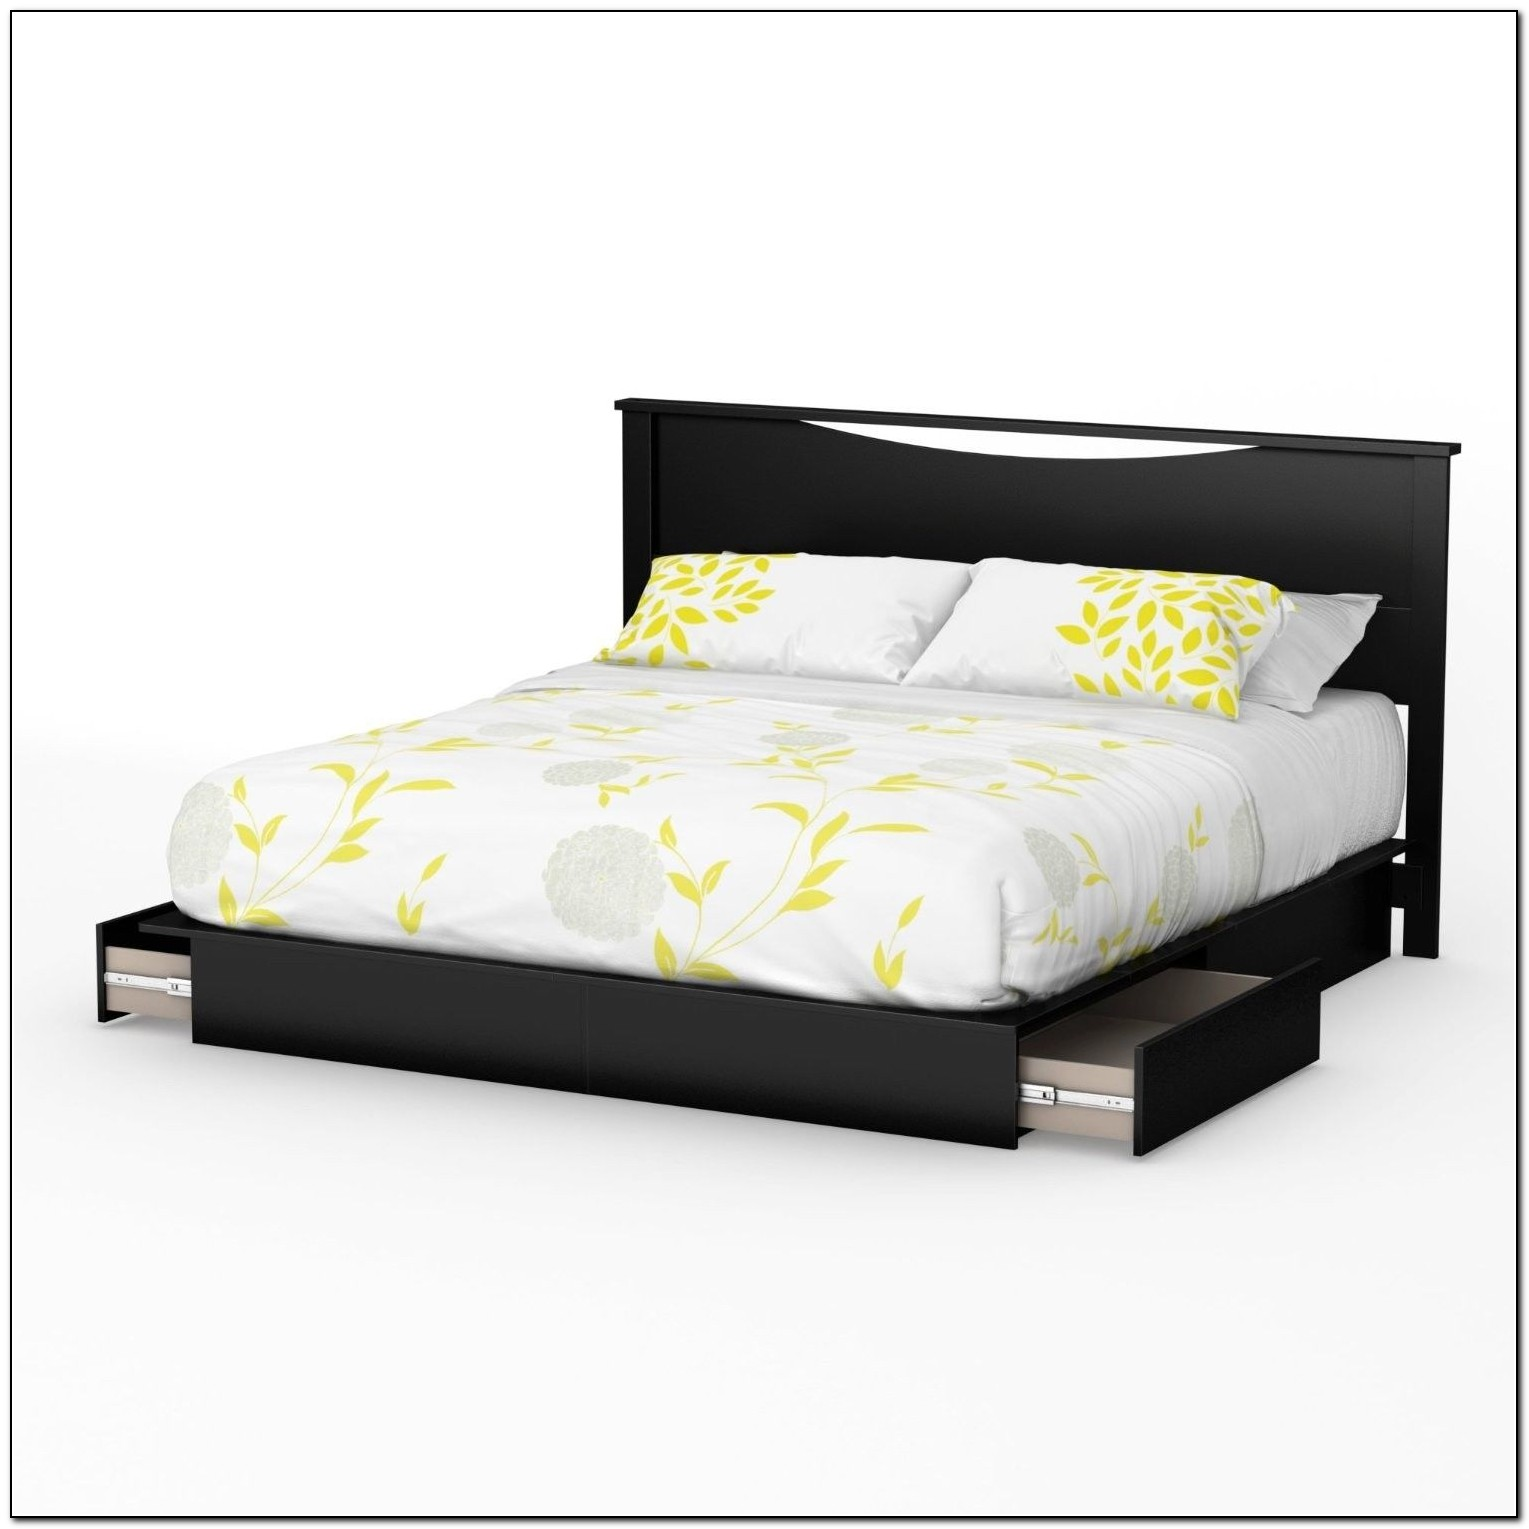 Black Platform Bed With Drawers